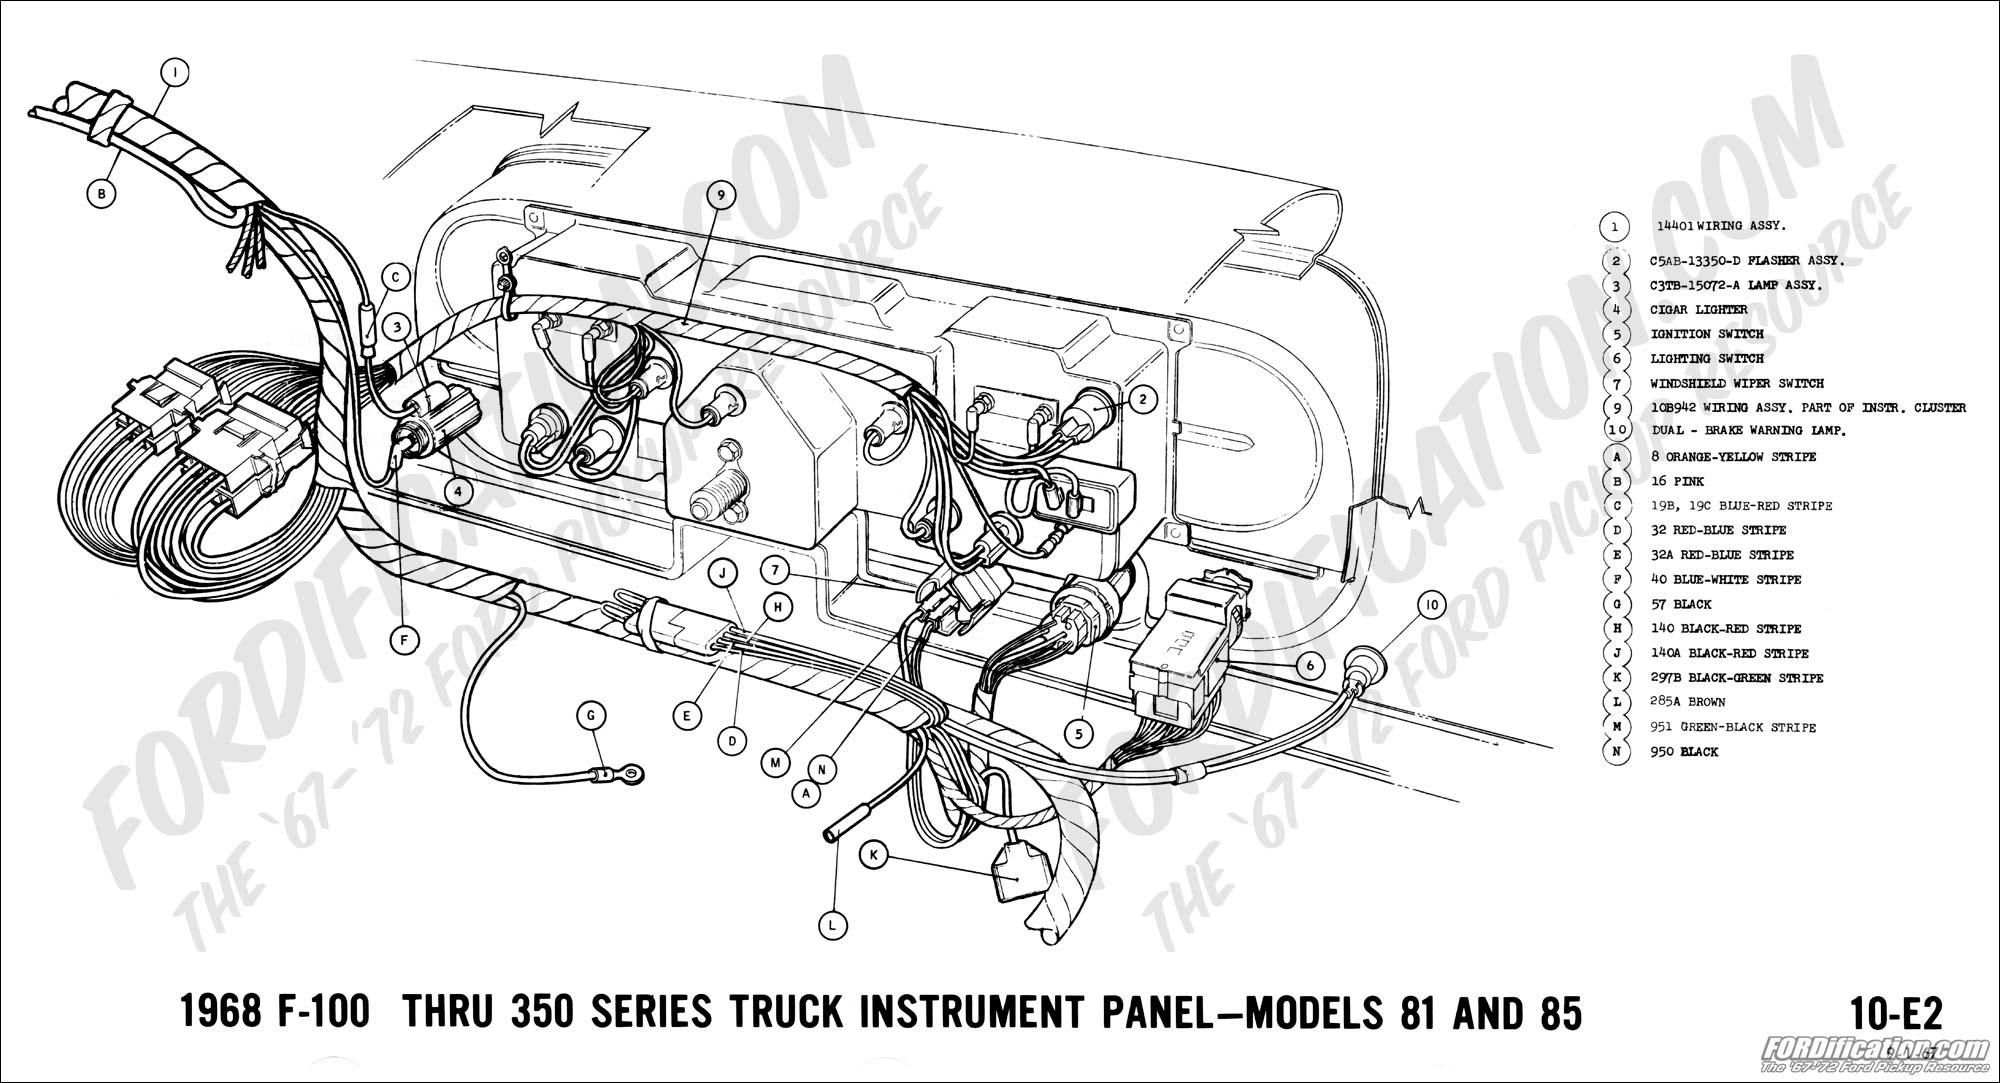 1969 Ford Pickup Fuse Box Wiring Library Tempo Diagram Free Download Schematic 1968 F 100 Thru 350 Instrument Panel Truck Technical Drawings And Schematics Section